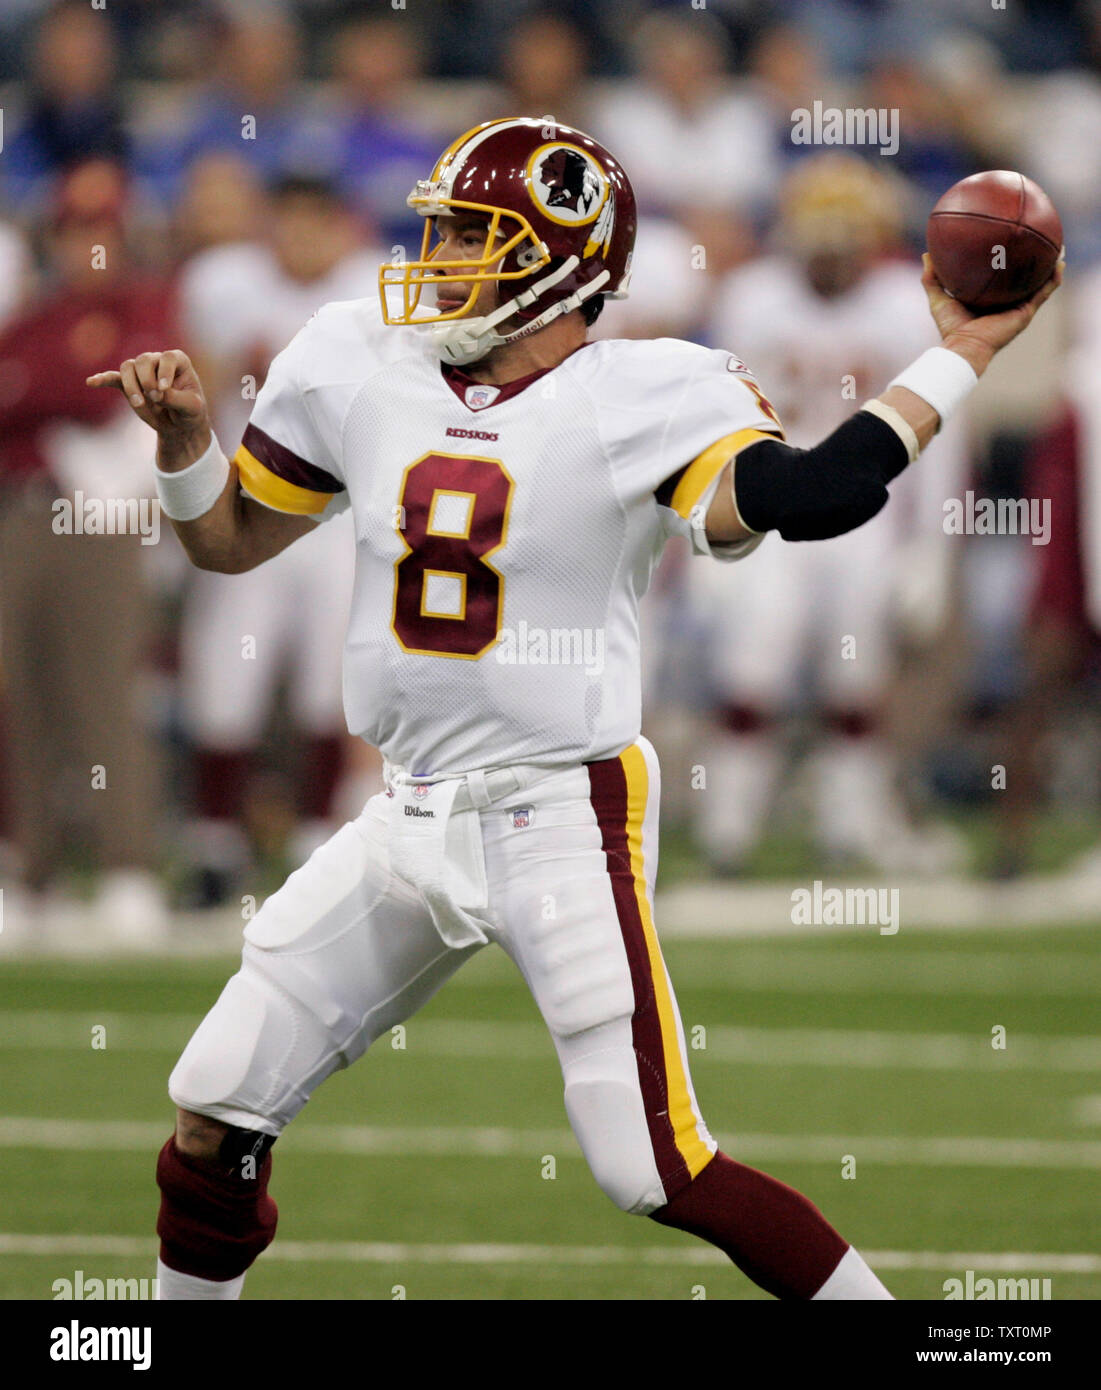 Washington Redskins quarterback Mark Brunell (8) throws a touchdown pass in the second quarter against the Indianapolis Colts at the RCA Dome in Indianapolis on October 22, 2006. (UPI Photo/Mark Cowan) - Stock Image